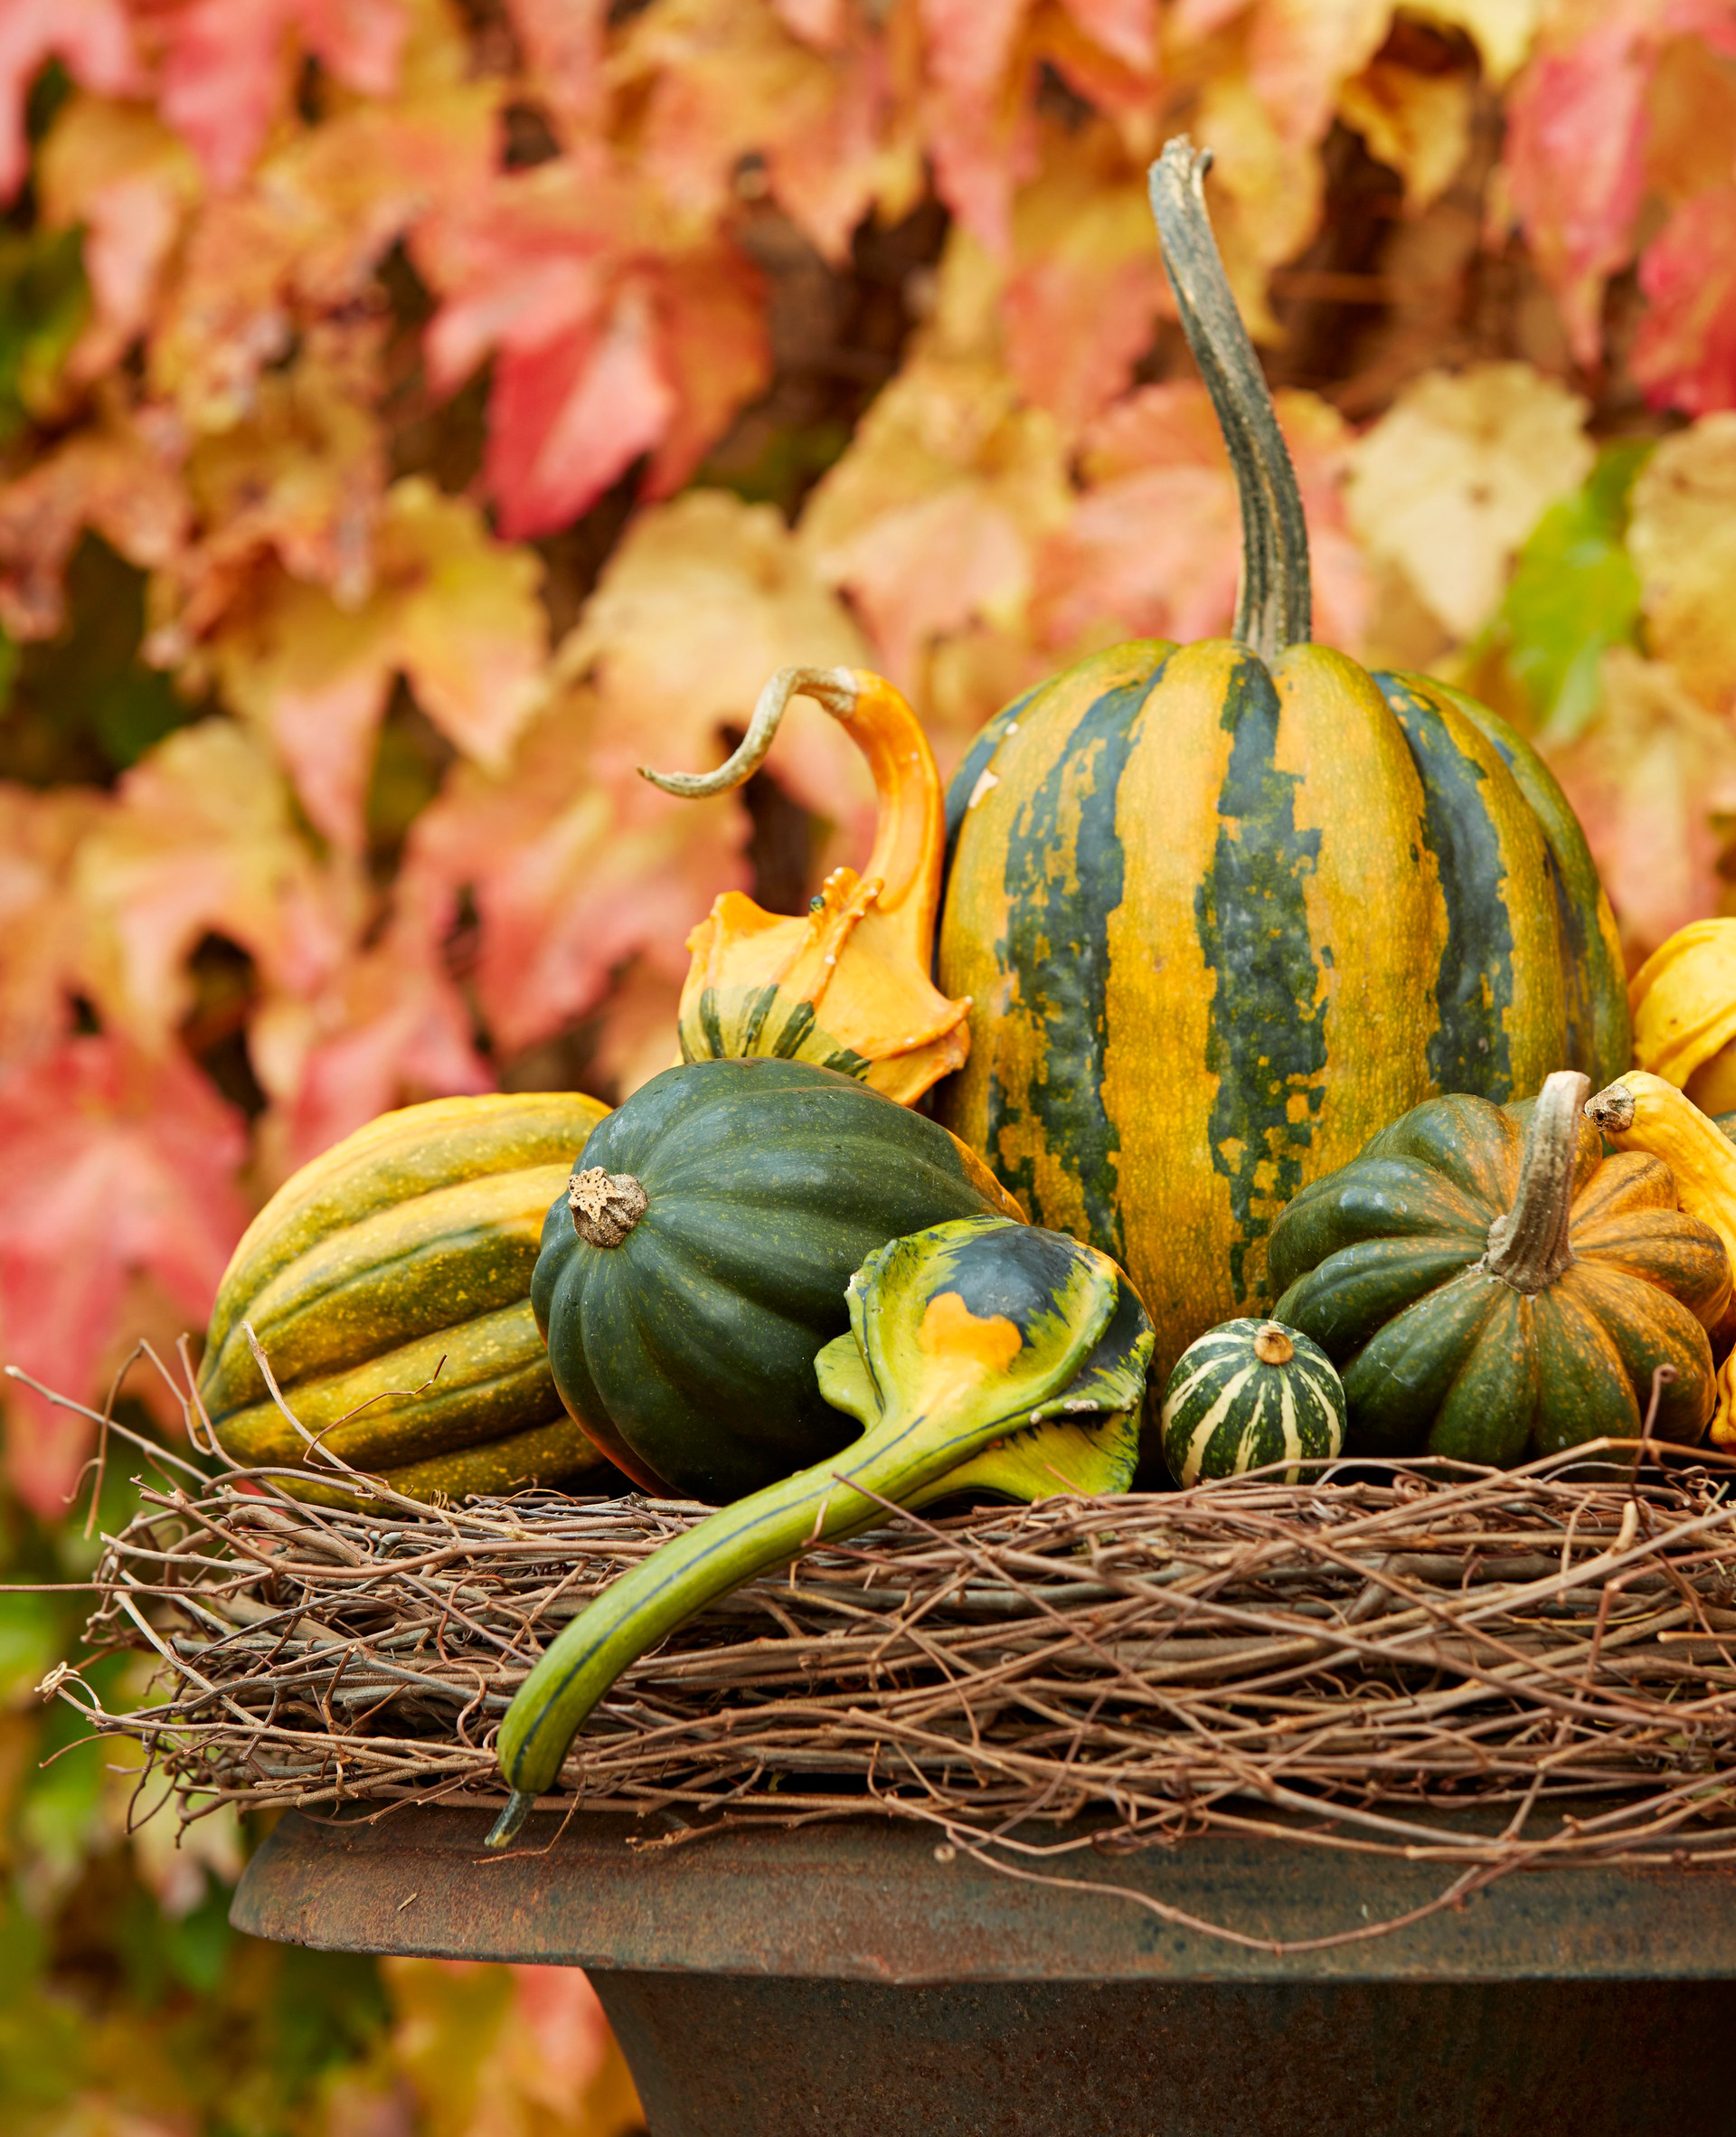 Gourd grouping